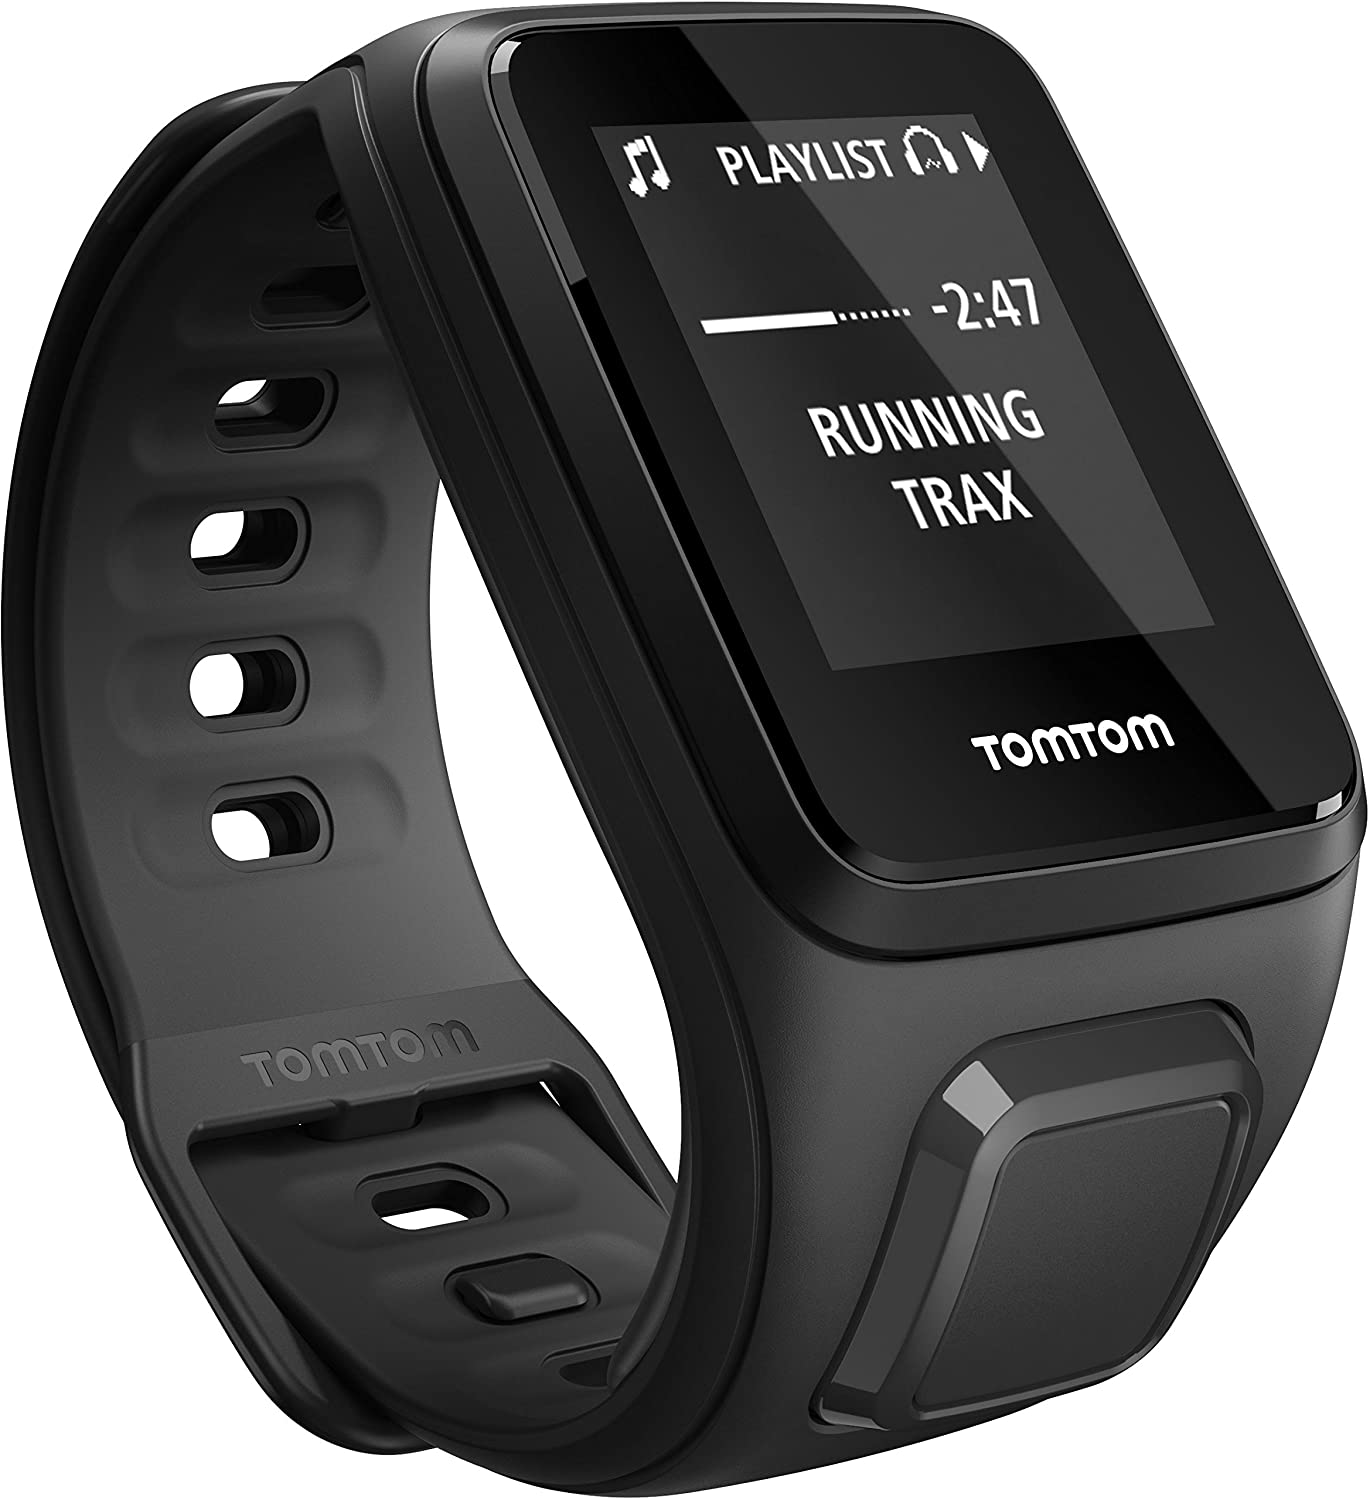 mode tracker smartwatch heart gps watch running item torntisc sport multi rate smart watches